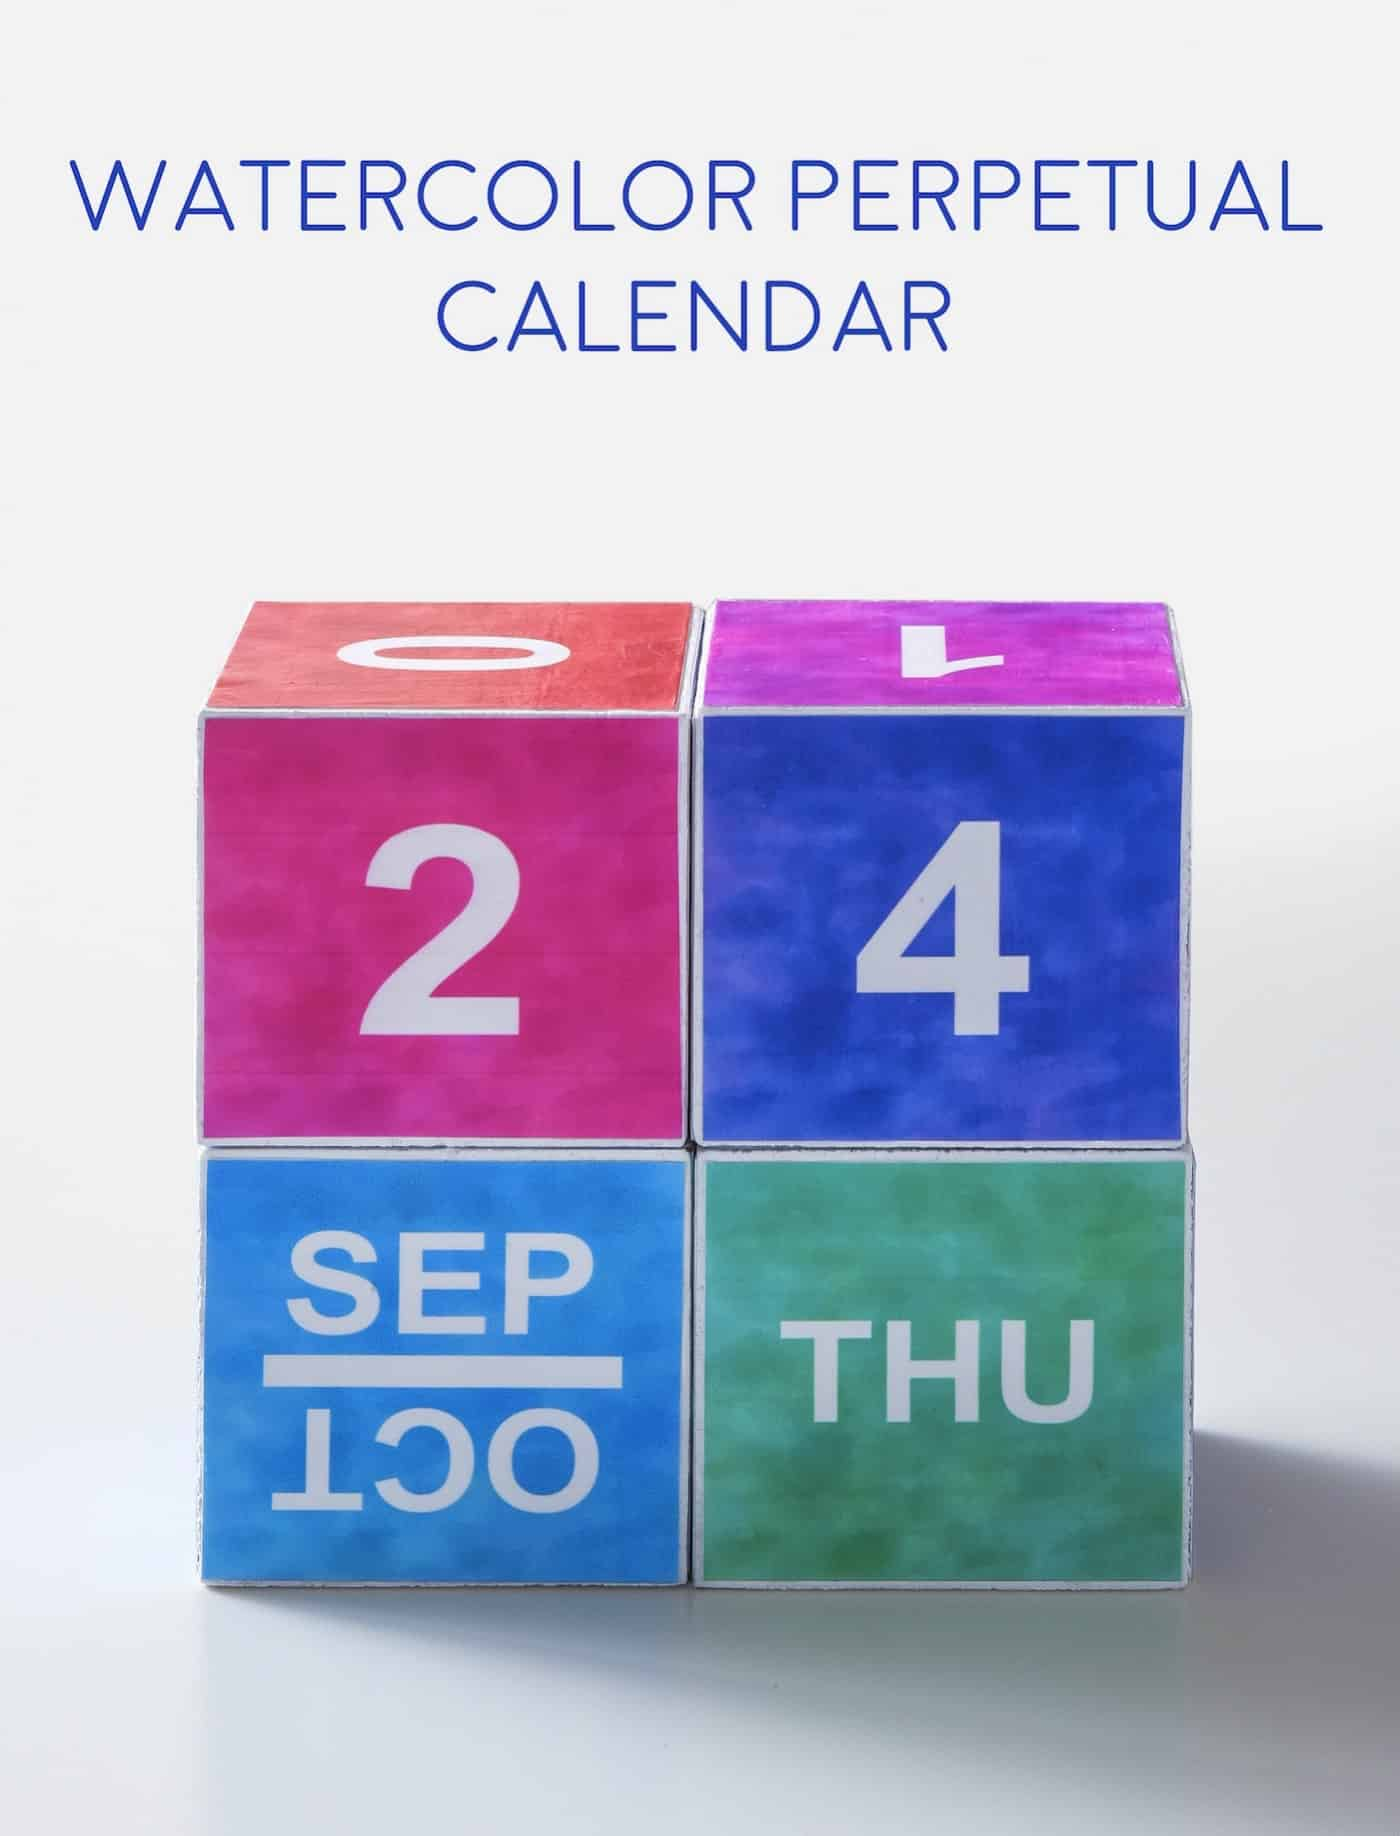 photo about Printable Perpetual Calendars named Watercolor Perpetual Calendar (with Absolutely free Printable) - Mod